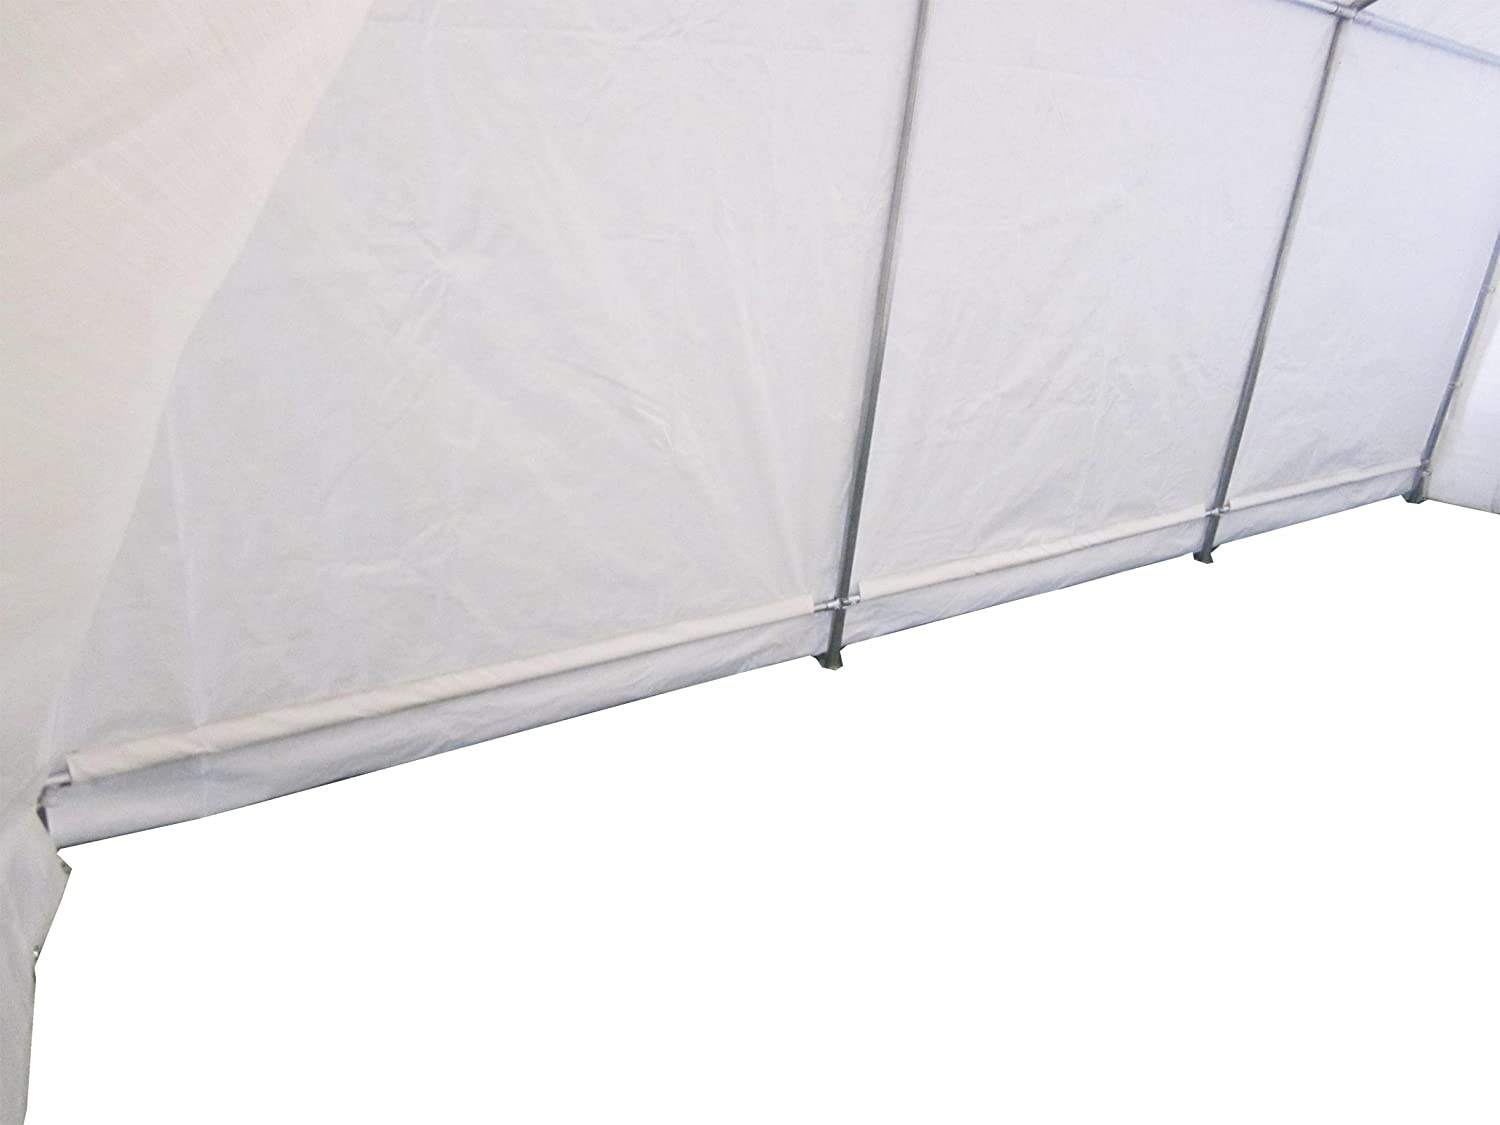 FoxHunter Heavy Duty Waterproof 3m X 6m Carport Party Tent Canopy White 180g Polyster Steel Frame Amazoncouk Garden Outdoors